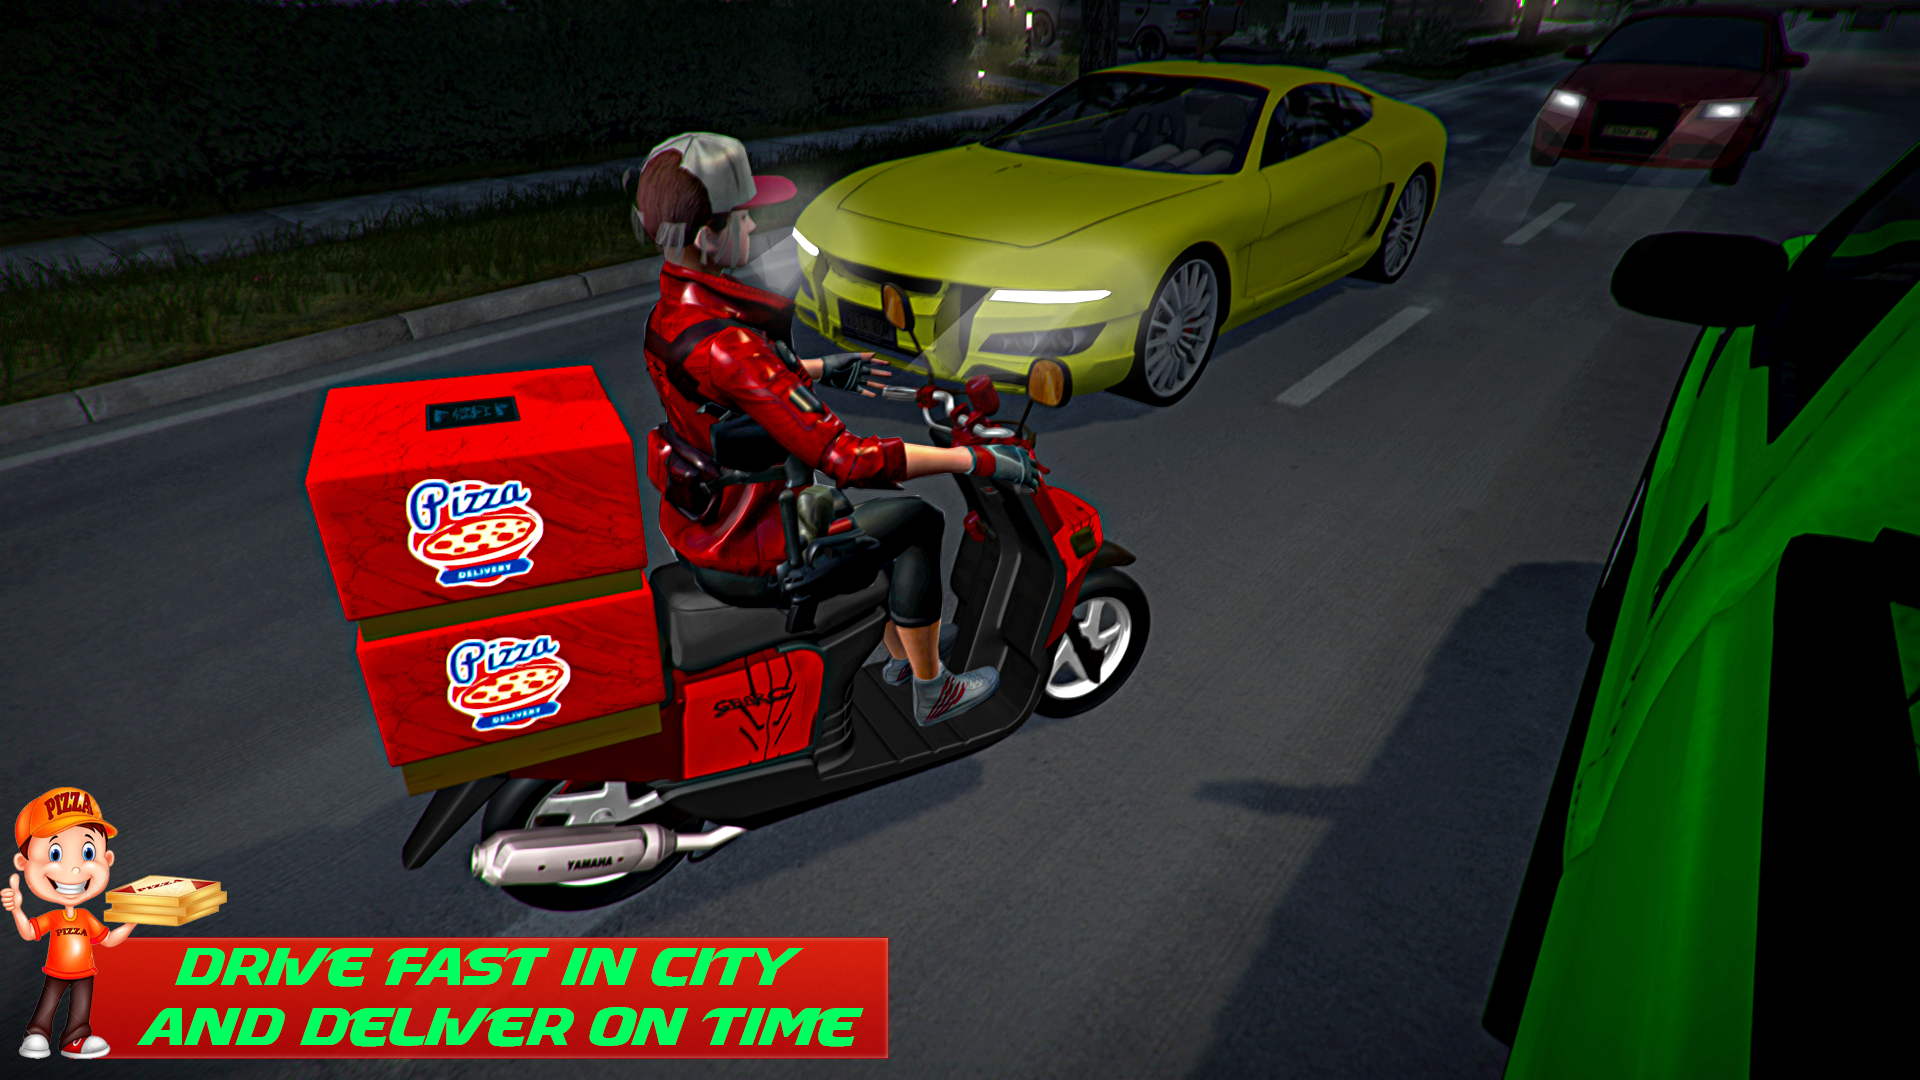 Pizza Delivery Girl 2020: Moto Pizza Simulator Juego para niños para divertirse: Amazon.es: Appstore para Android